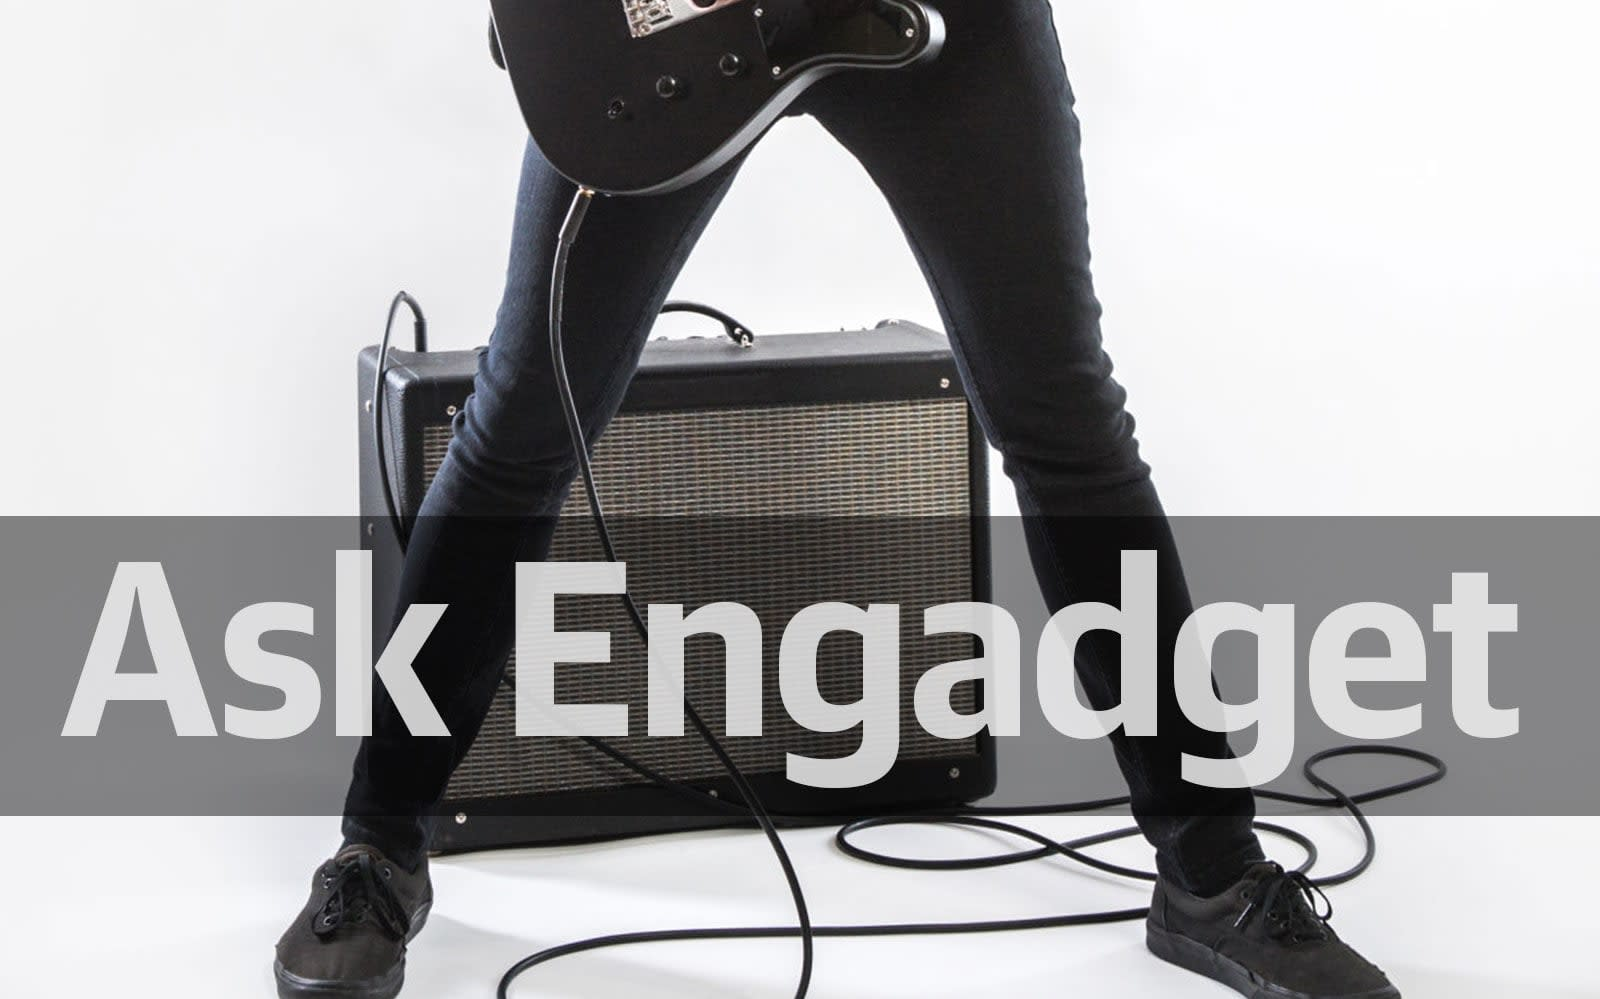 Best Practice Amp 2020 Ask Engadget: What's the best connected guitar amp?